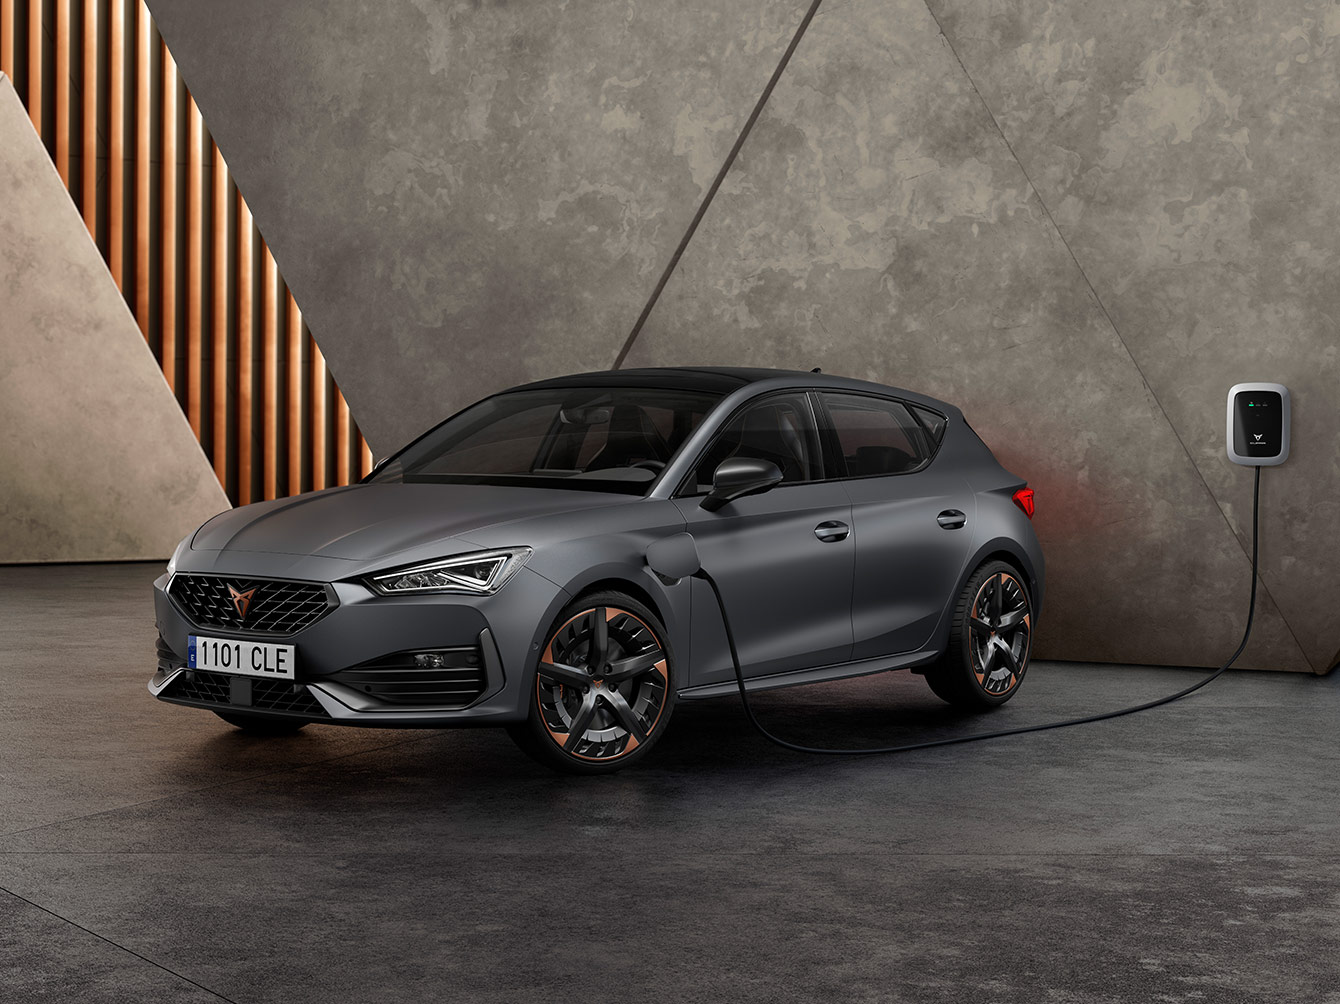 new-cupra-leon-ehybrid-five-door-magnetic-tech-matte-compact-sports-car-front-side-view-charging.jpg